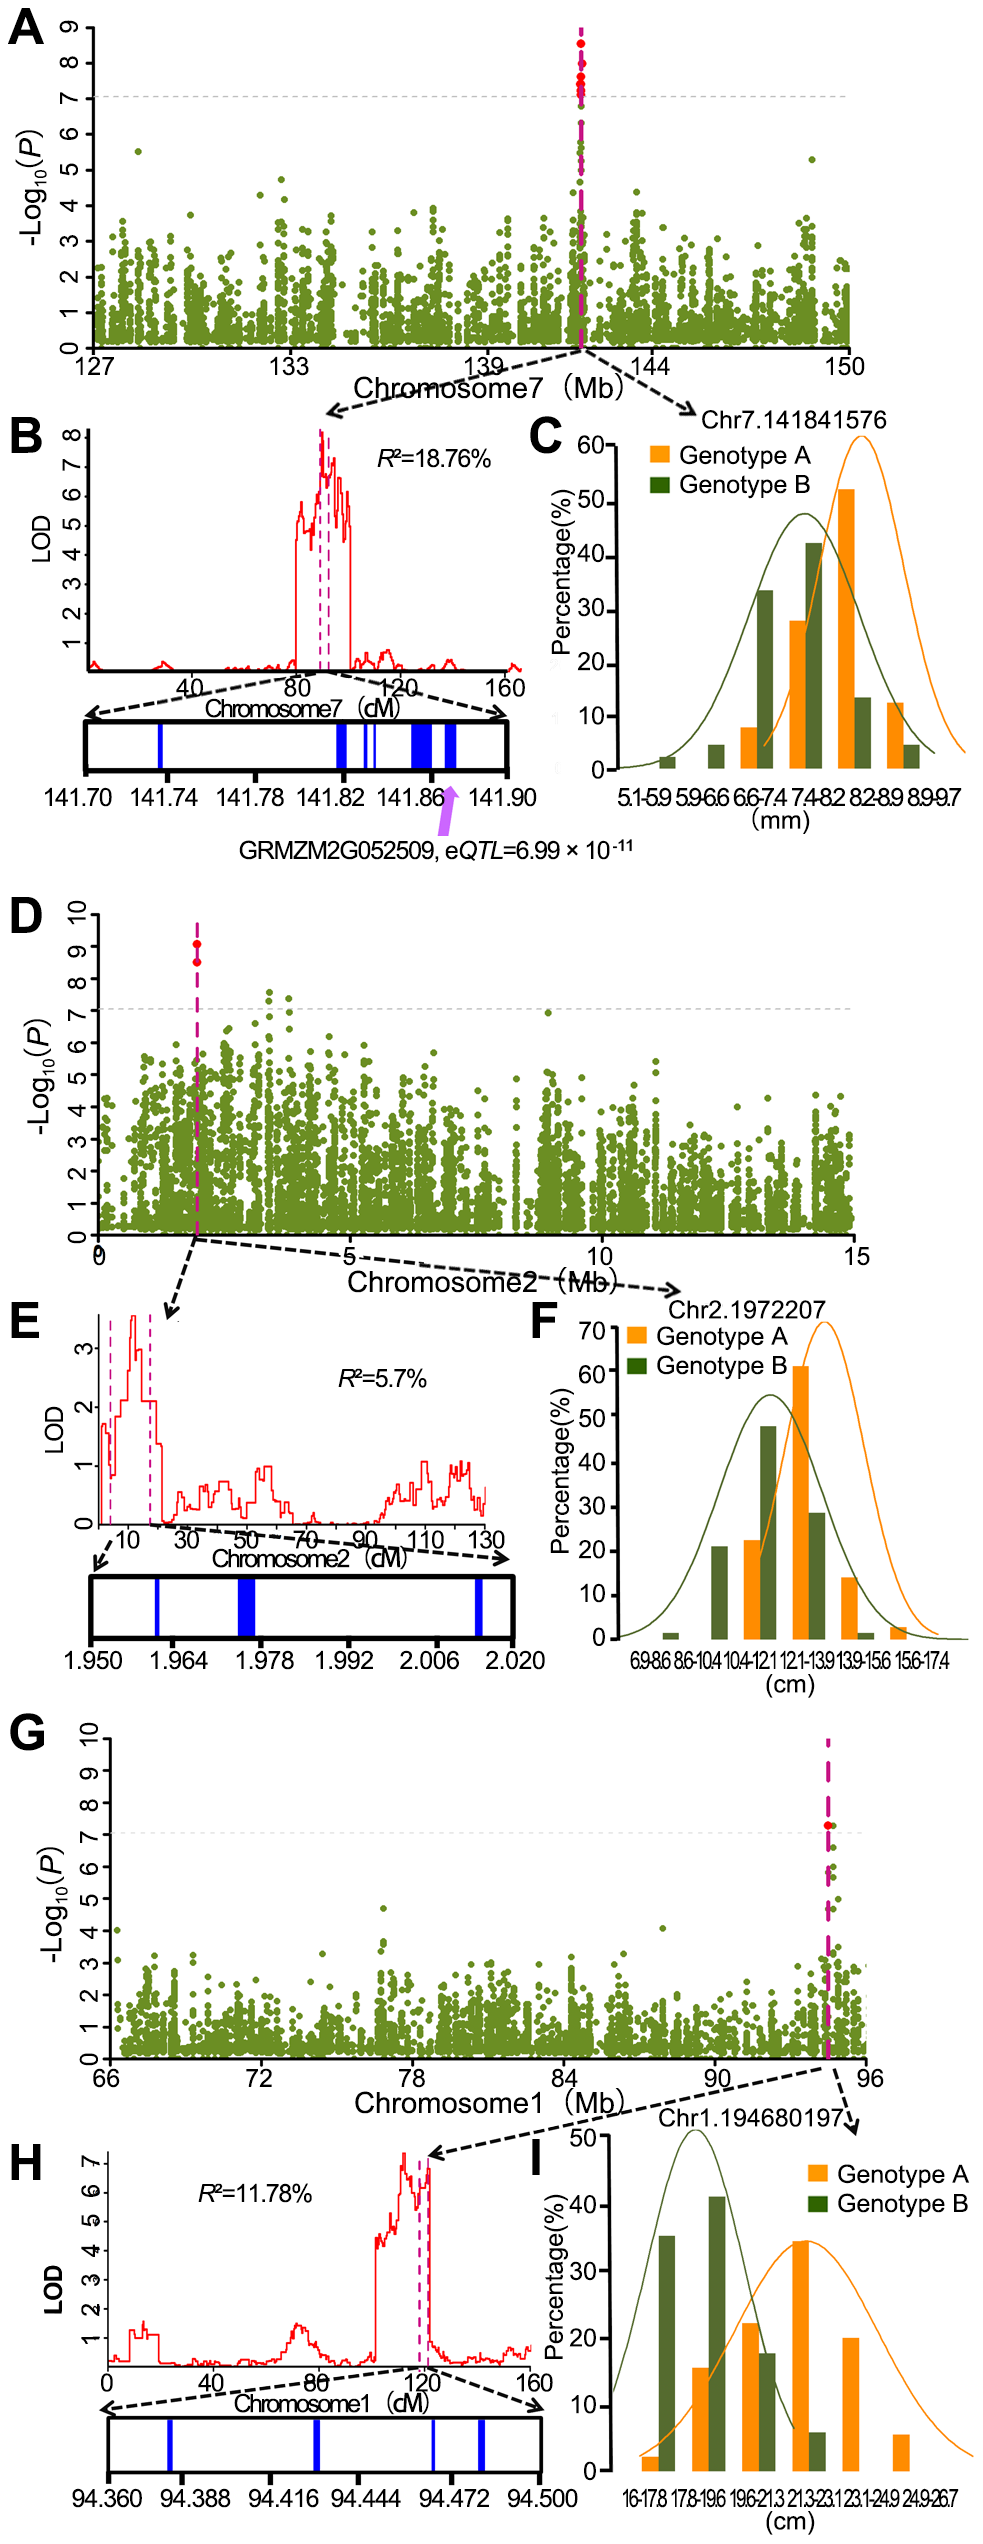 Co-localization of association peaks, QTL and well-annotated candidate genes.